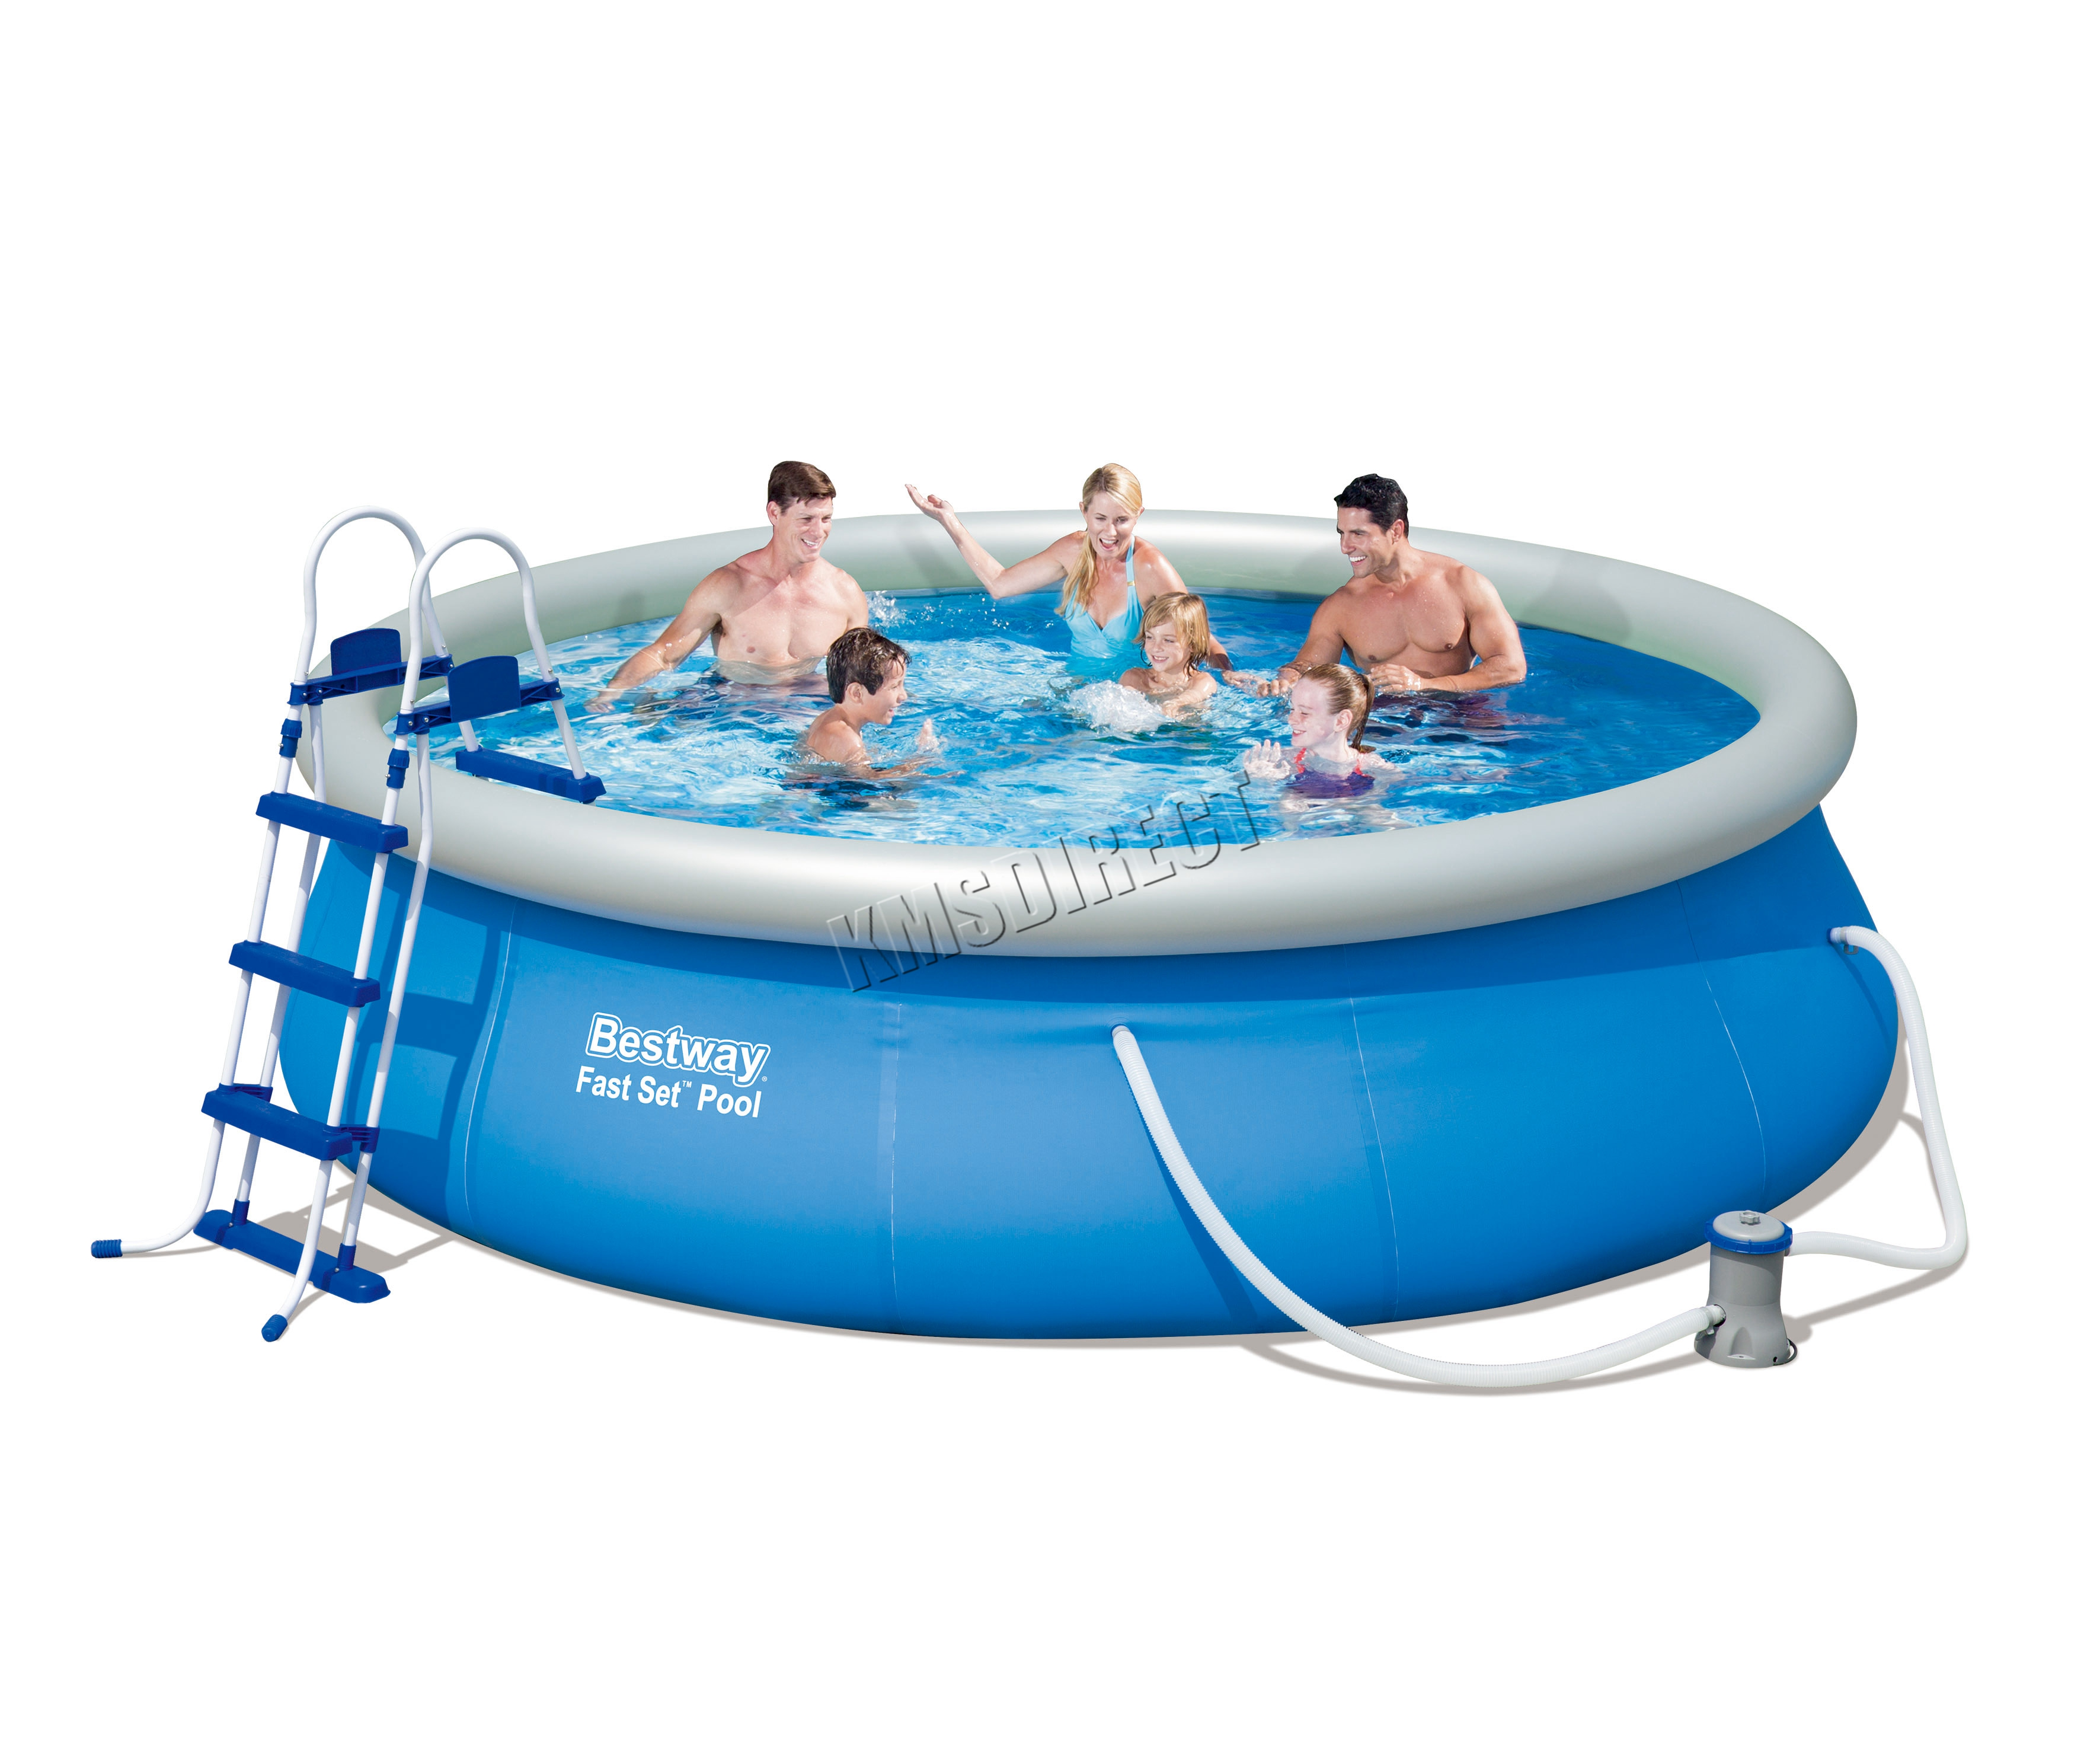 Pool Polyester Rund Bestway Fast Set Swimming Pool Round Inflatable 12ft X